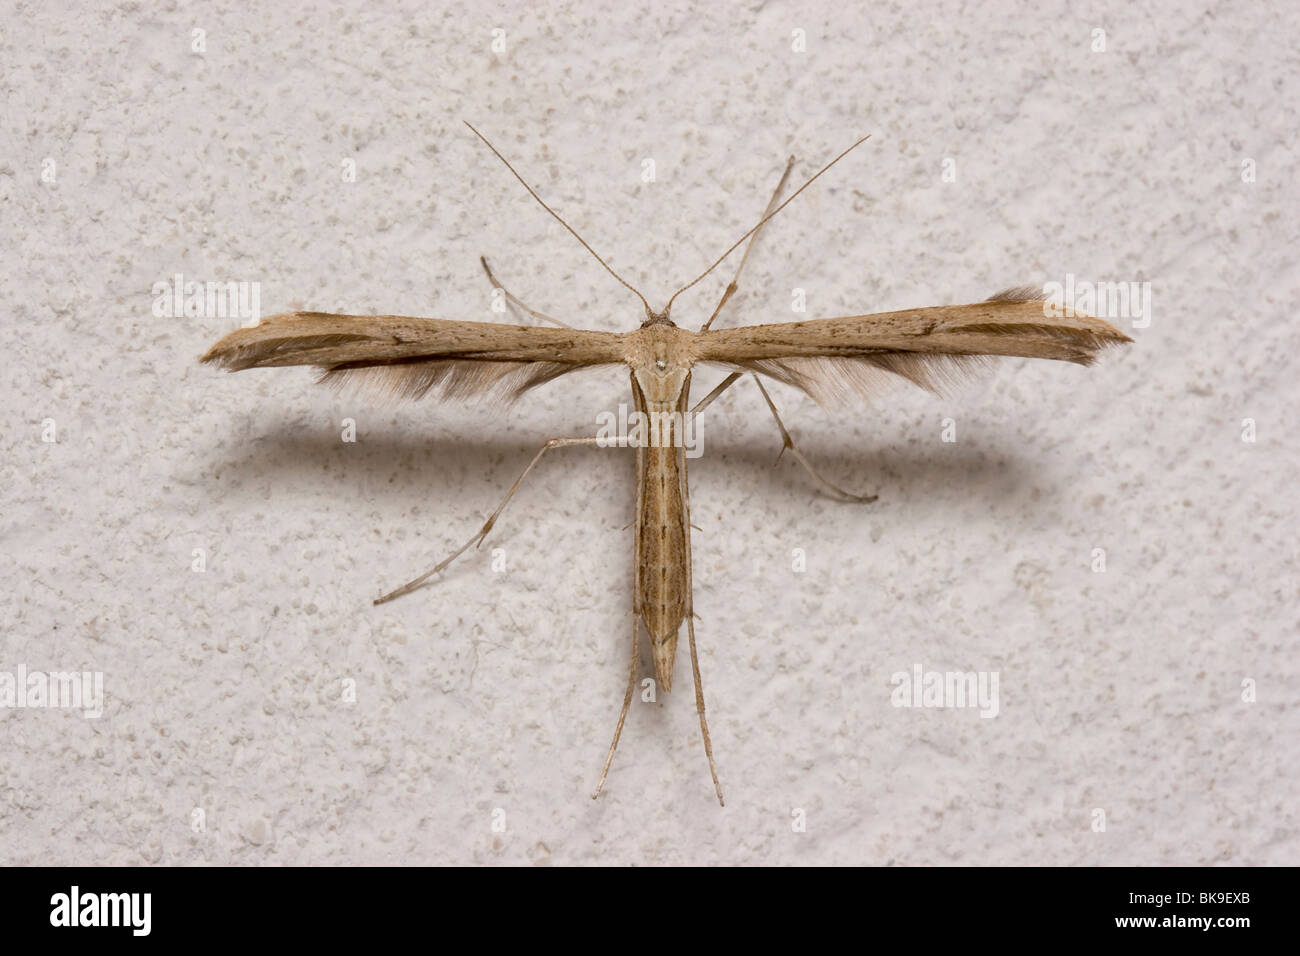 100 t shaped t shaped house plans australia liveideas co t shaped the plume moth emmelina monodactyla in its typical t shaped sciox Images